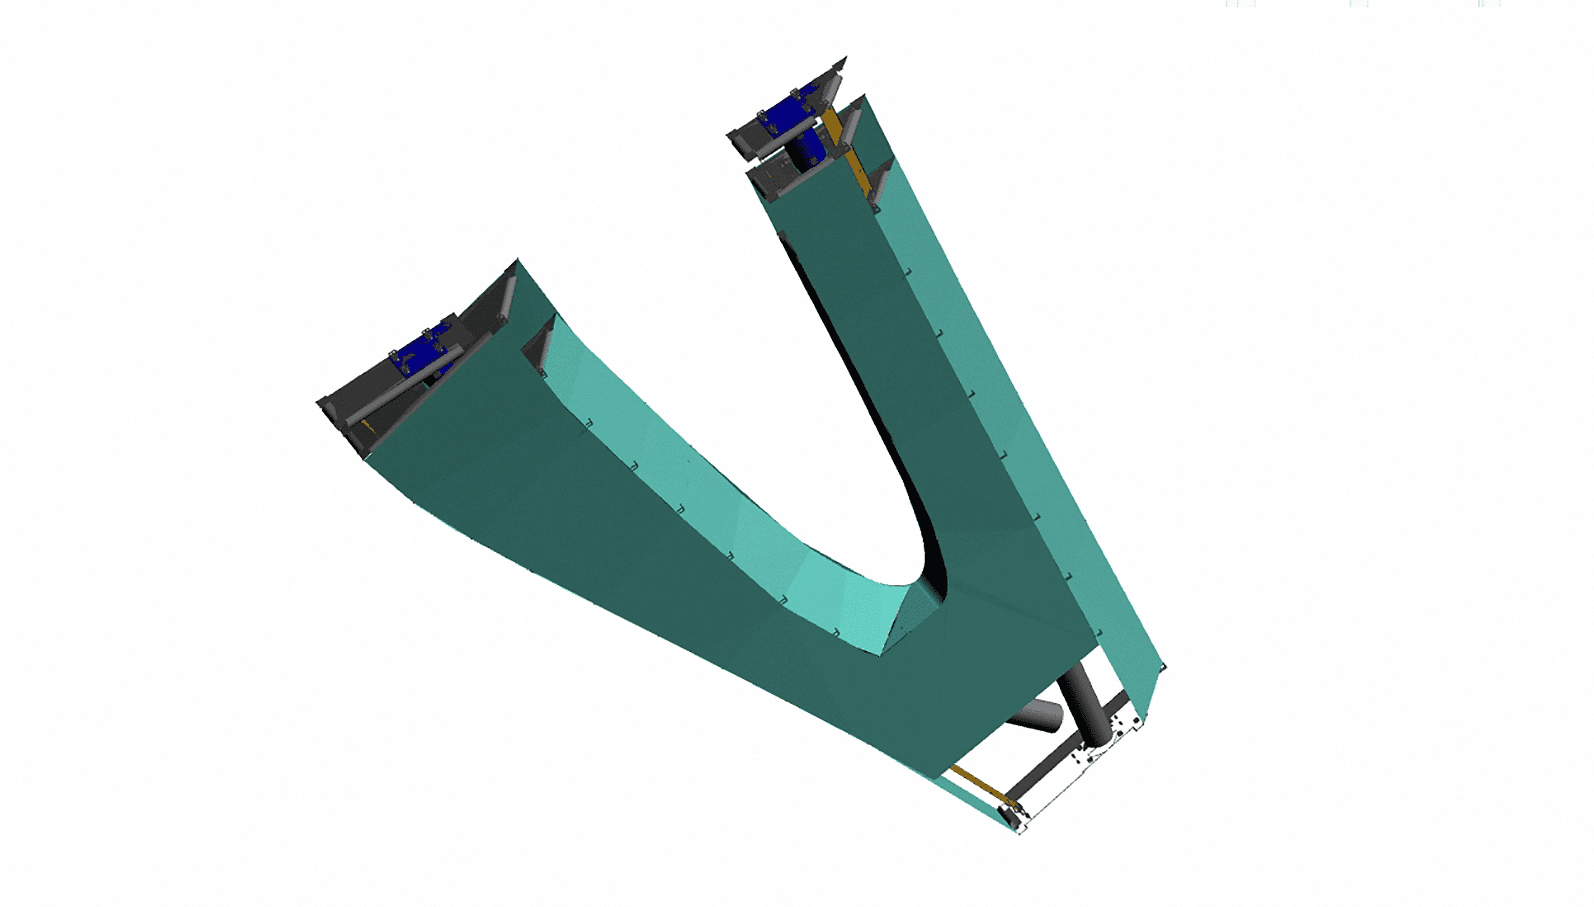 3D Model of a single ZEPPS Assembly for the Petersen Automotive Museum.